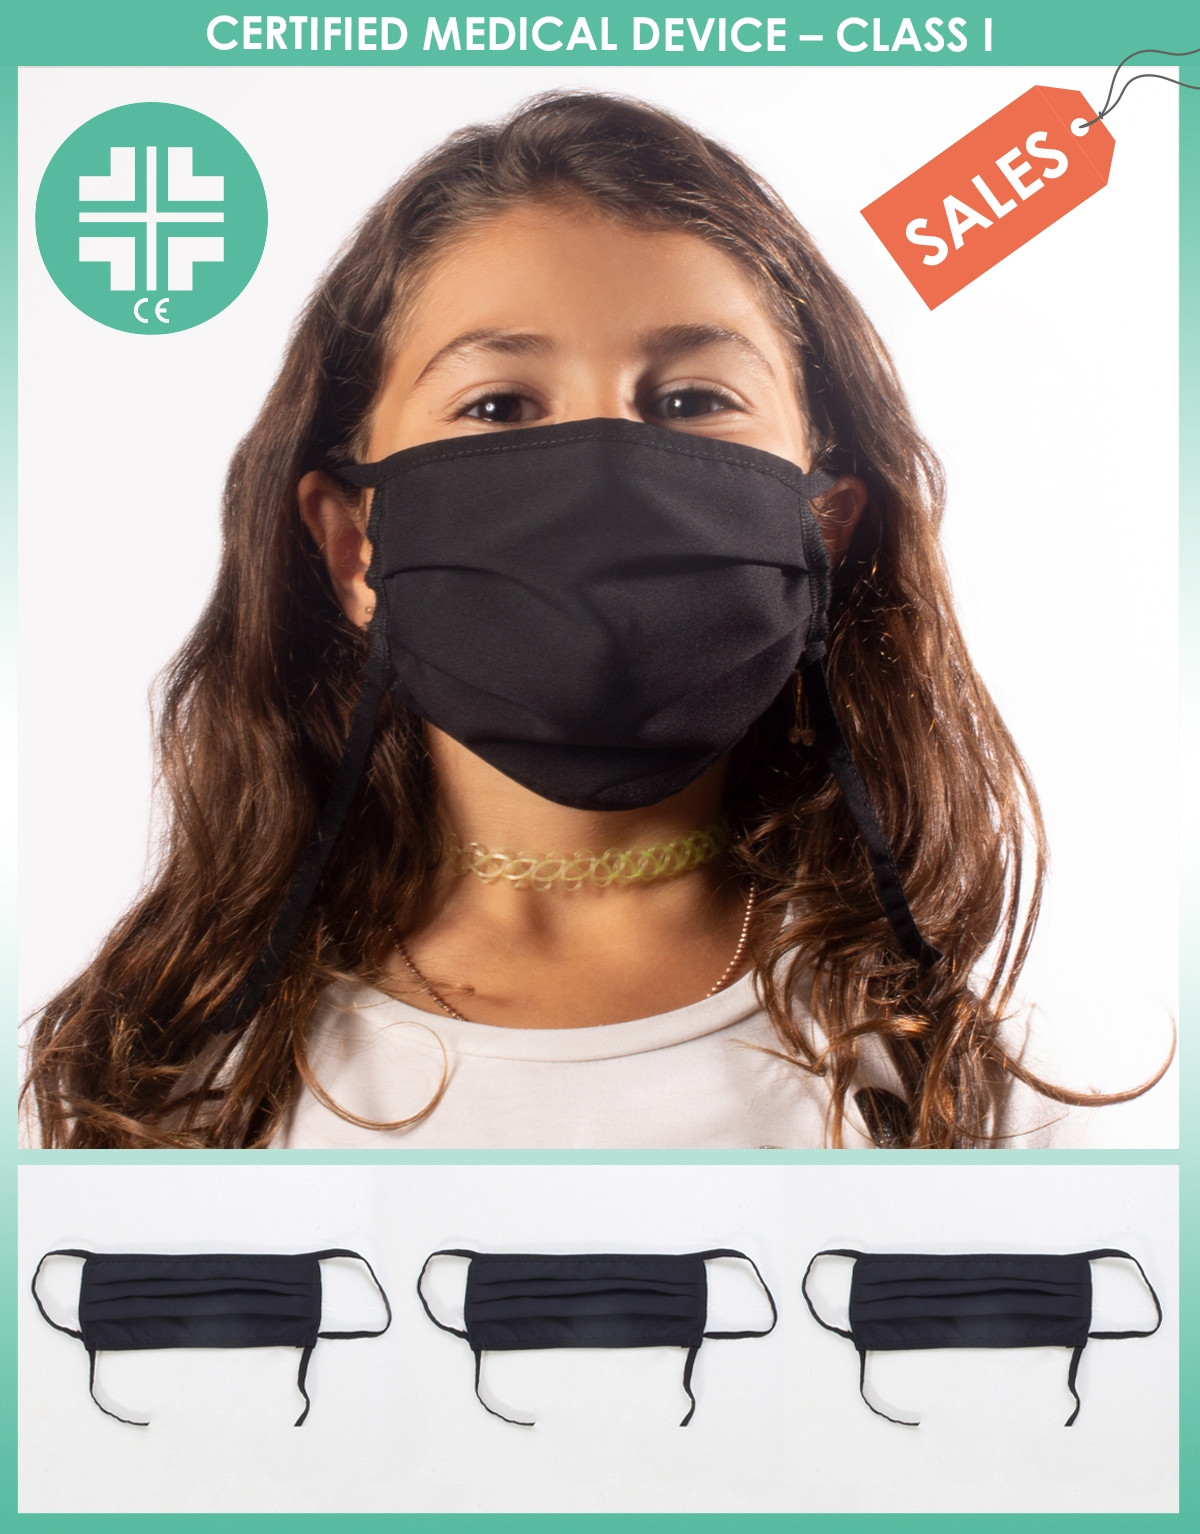 SURGICAL WASHABLE FACE MASK – MEDICAL DEVICE TYPE I FOR CHILDREN